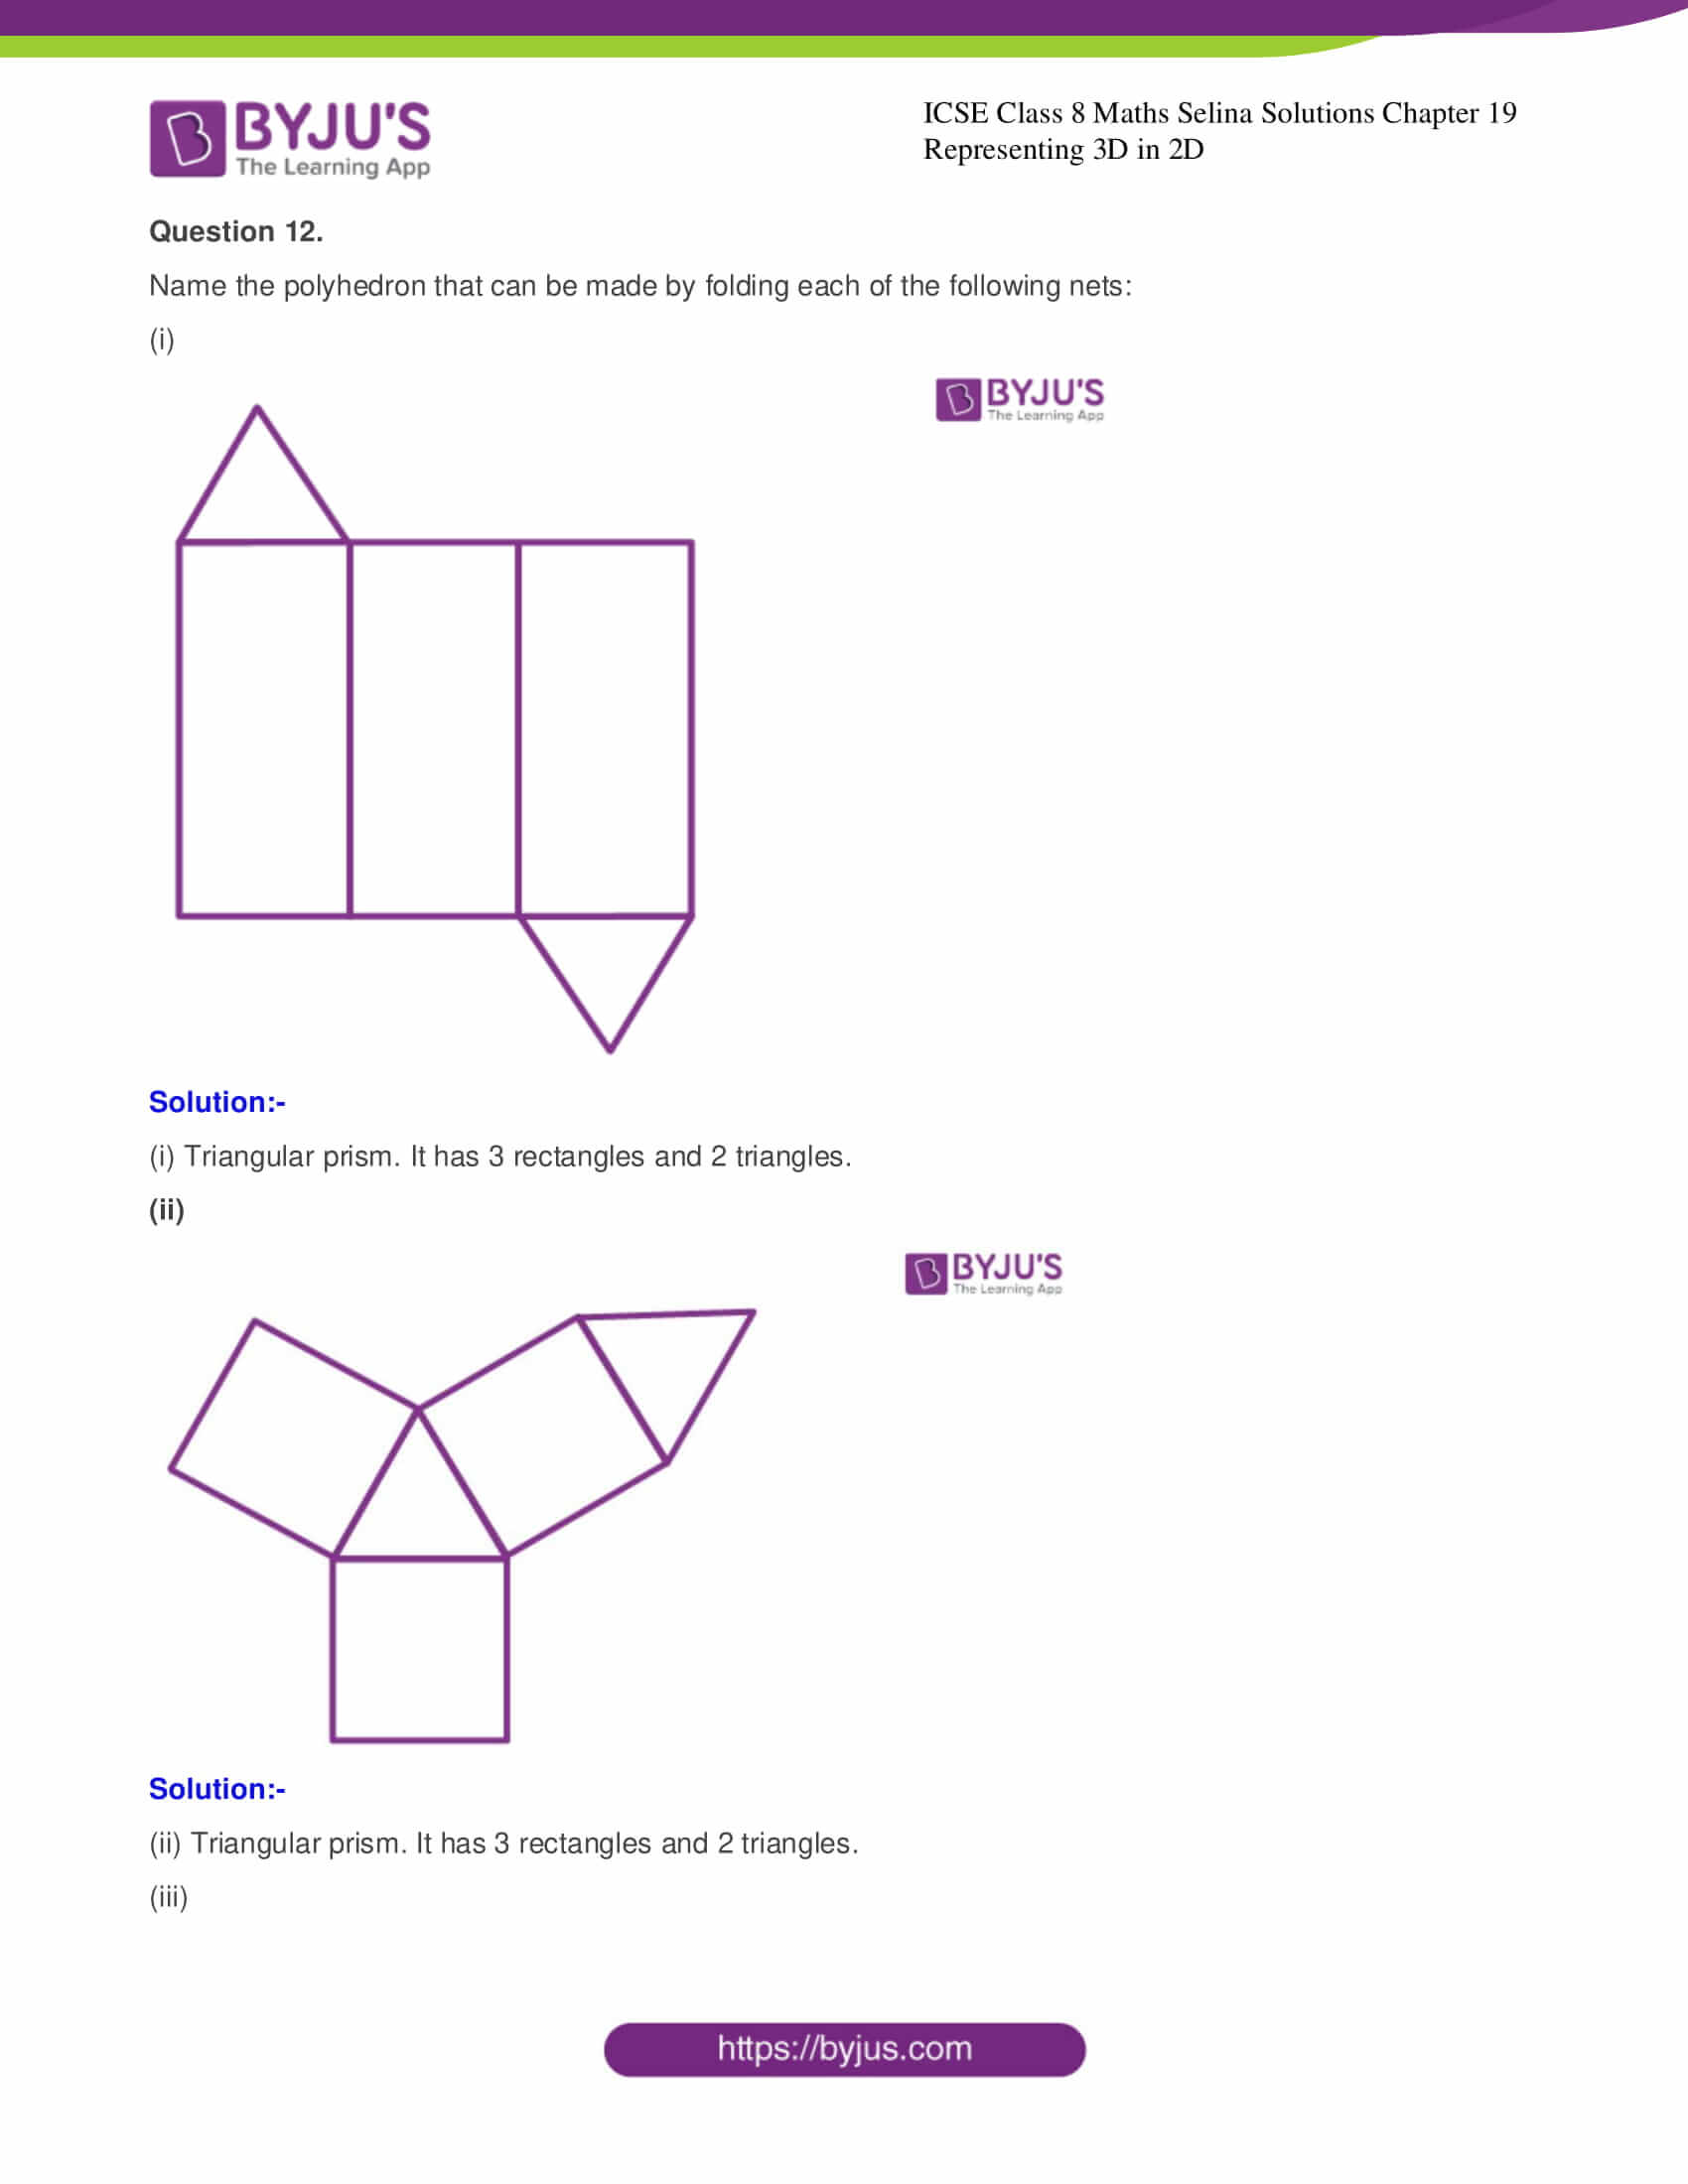 icse class 8 maths may3 selina solutions chapter 19 representing 3d in 2d 7